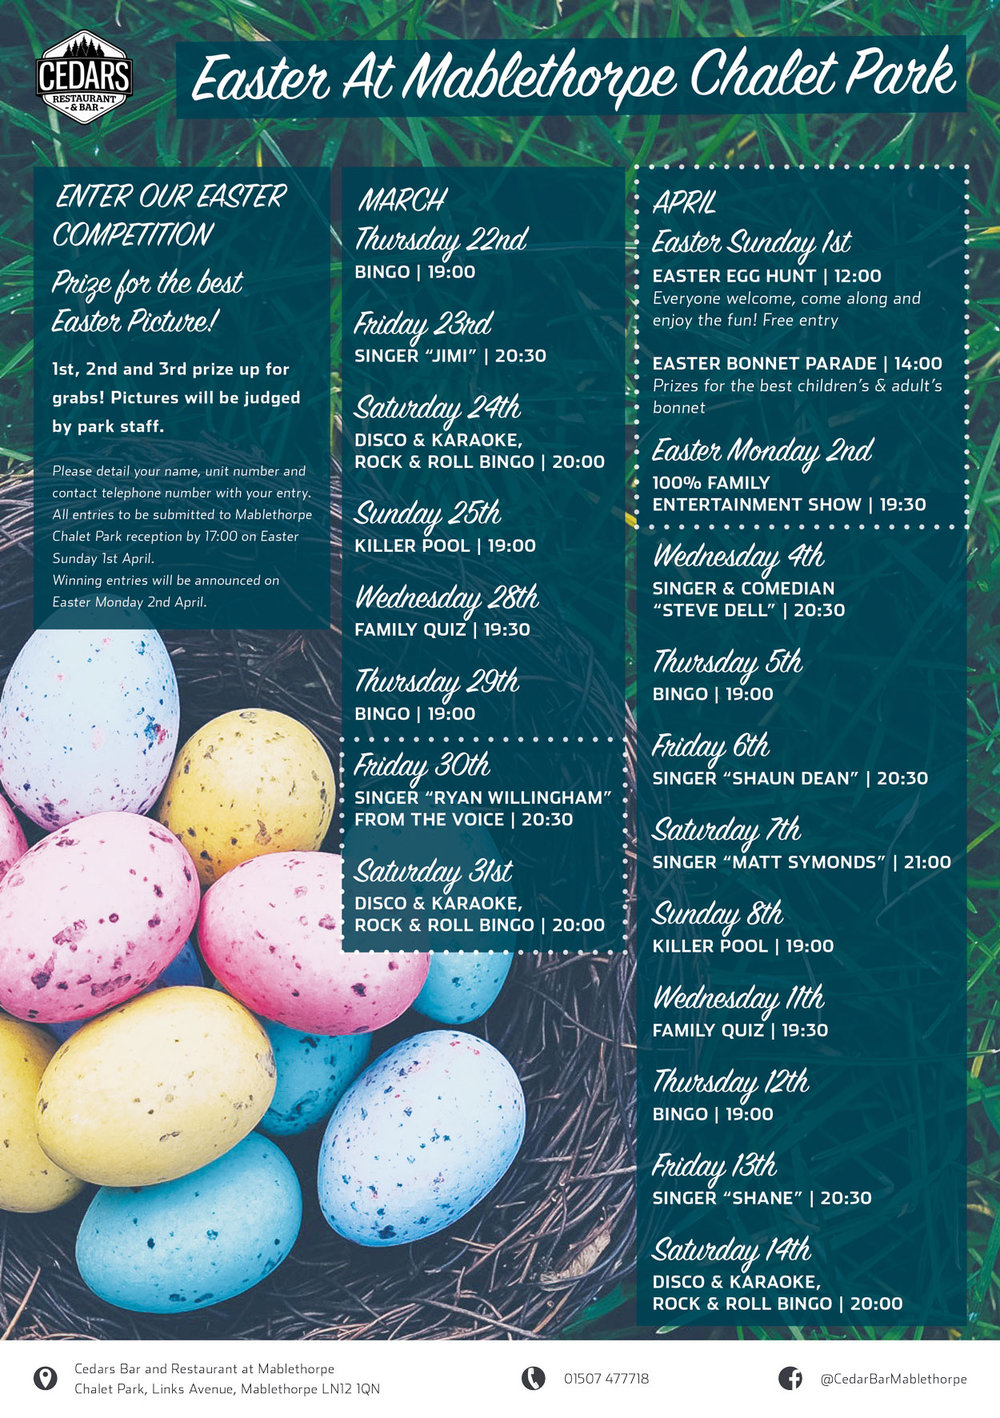 Easter events at Cedars Bar & Restaurant, Mablethorpe Chalet Park - click to enlarge!